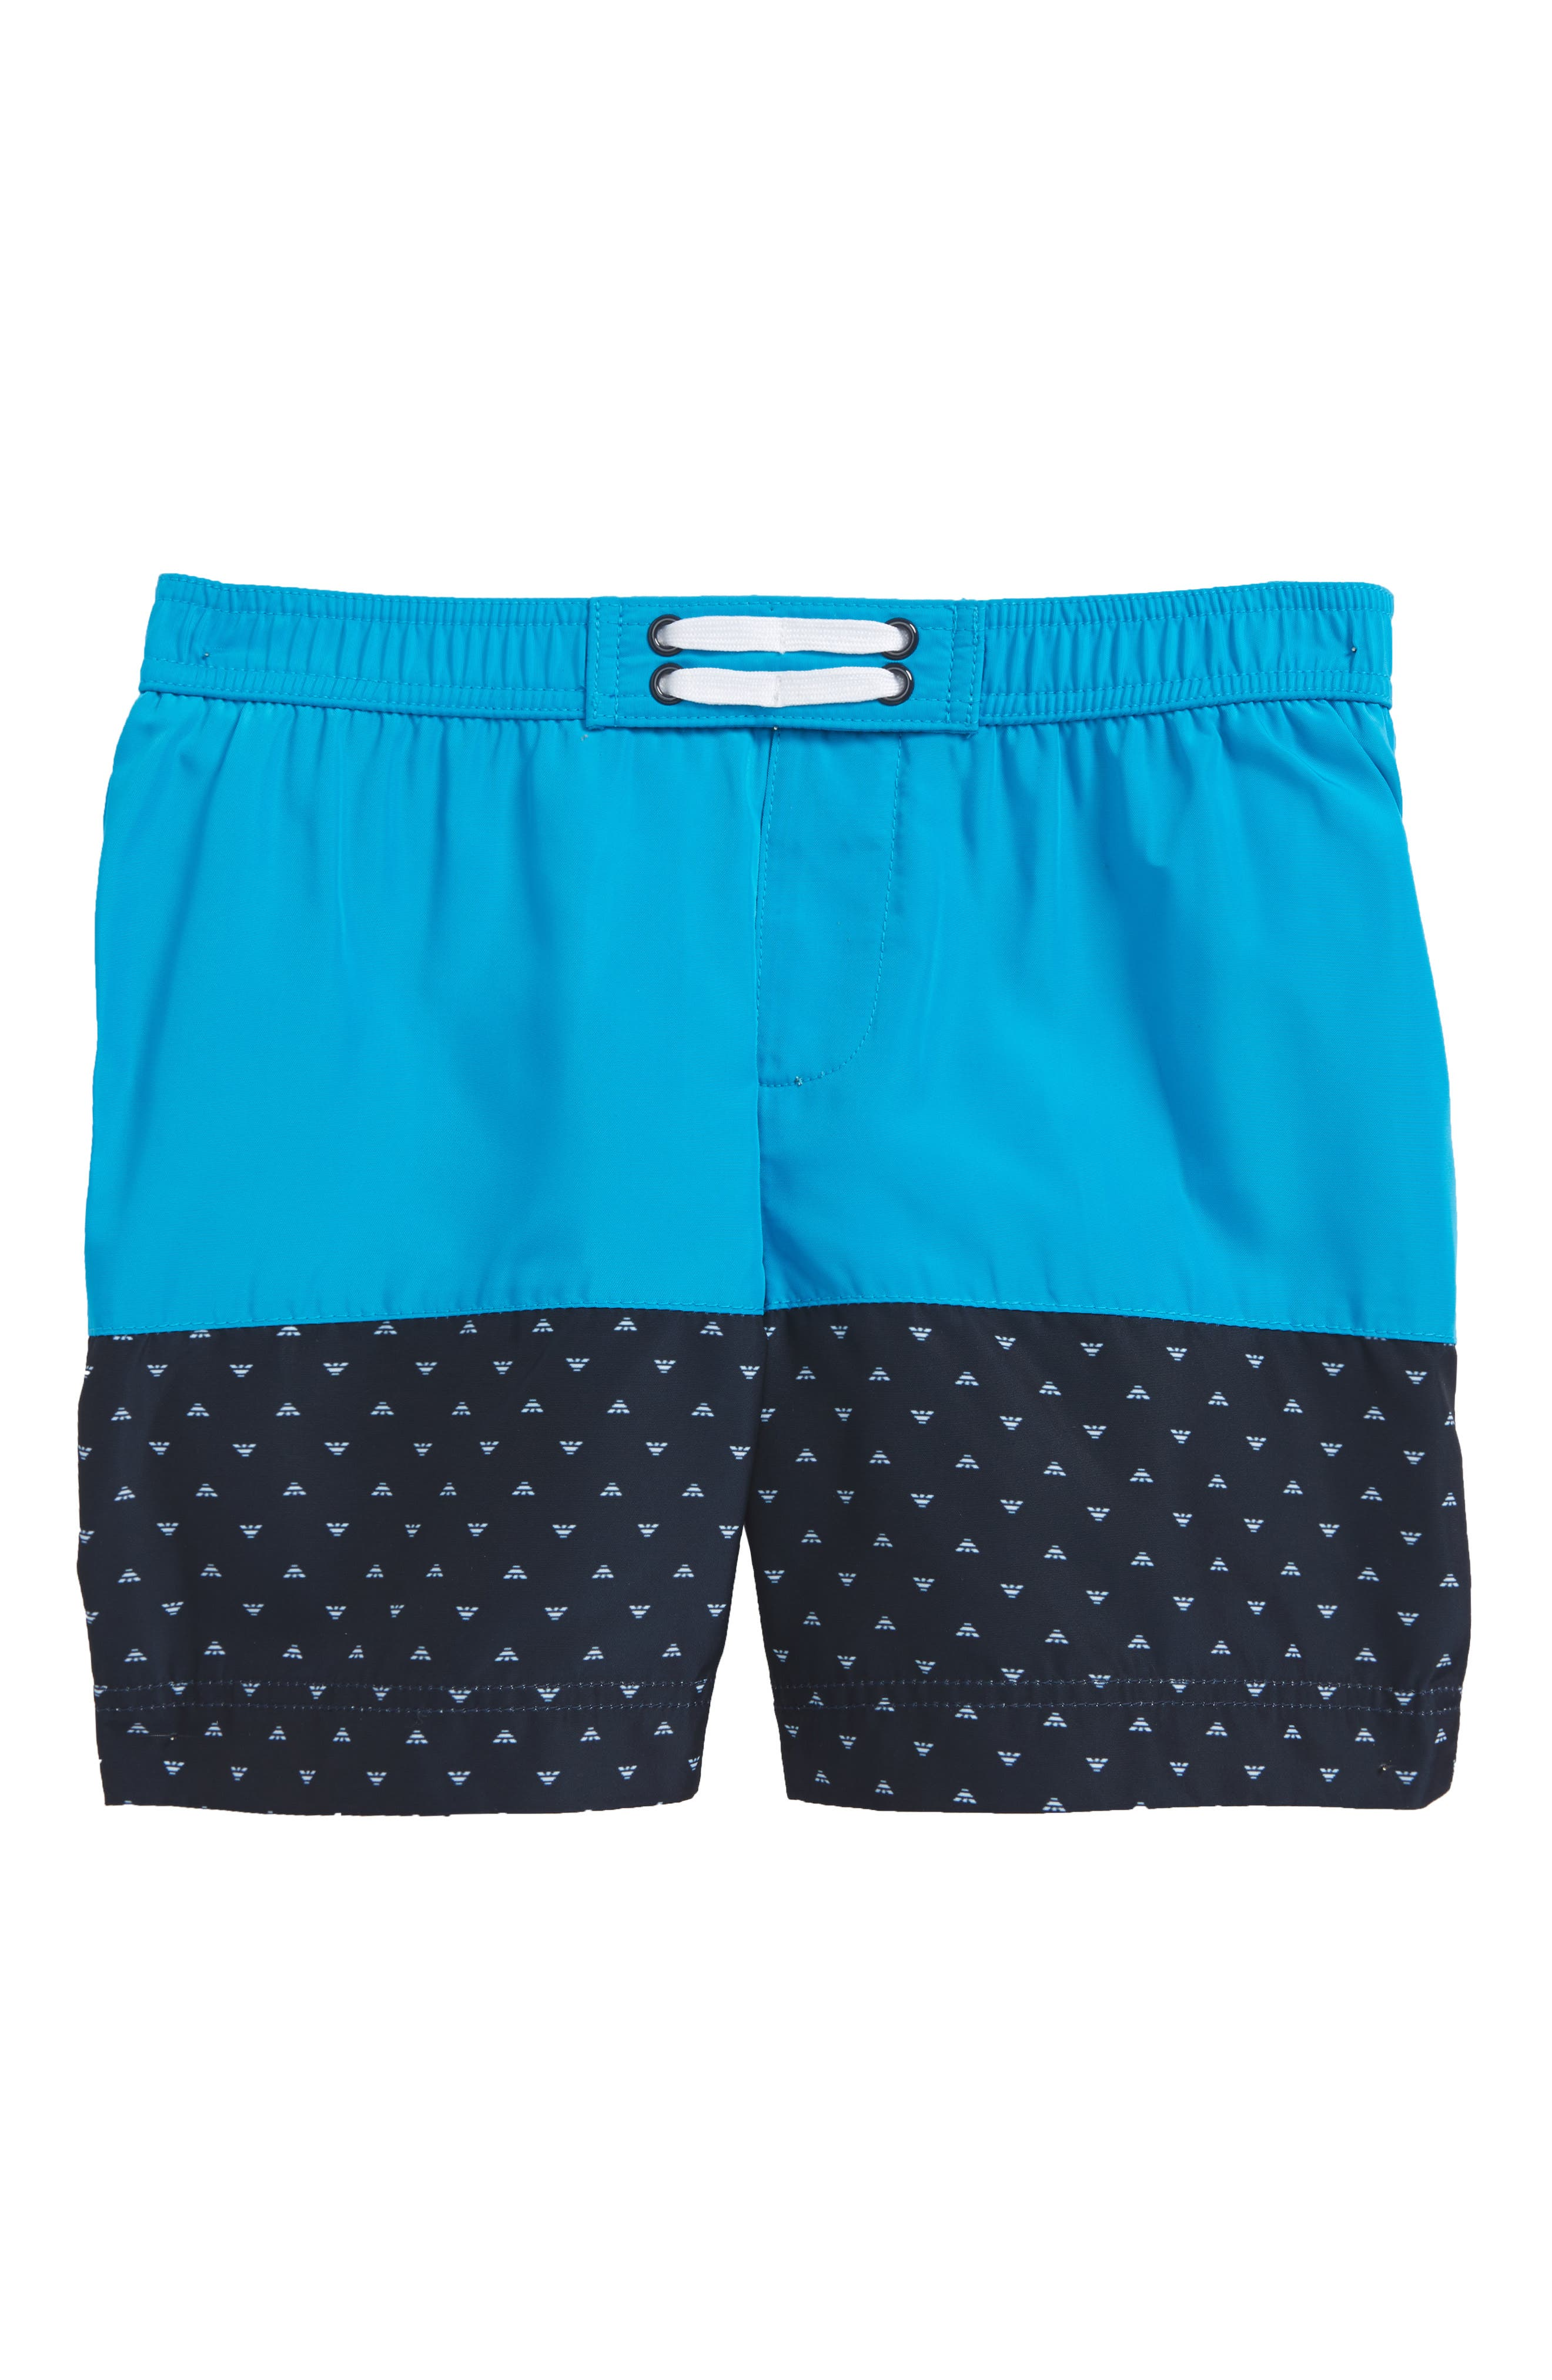 Logo Swim Trunks,                         Main,                         color, Turquoise